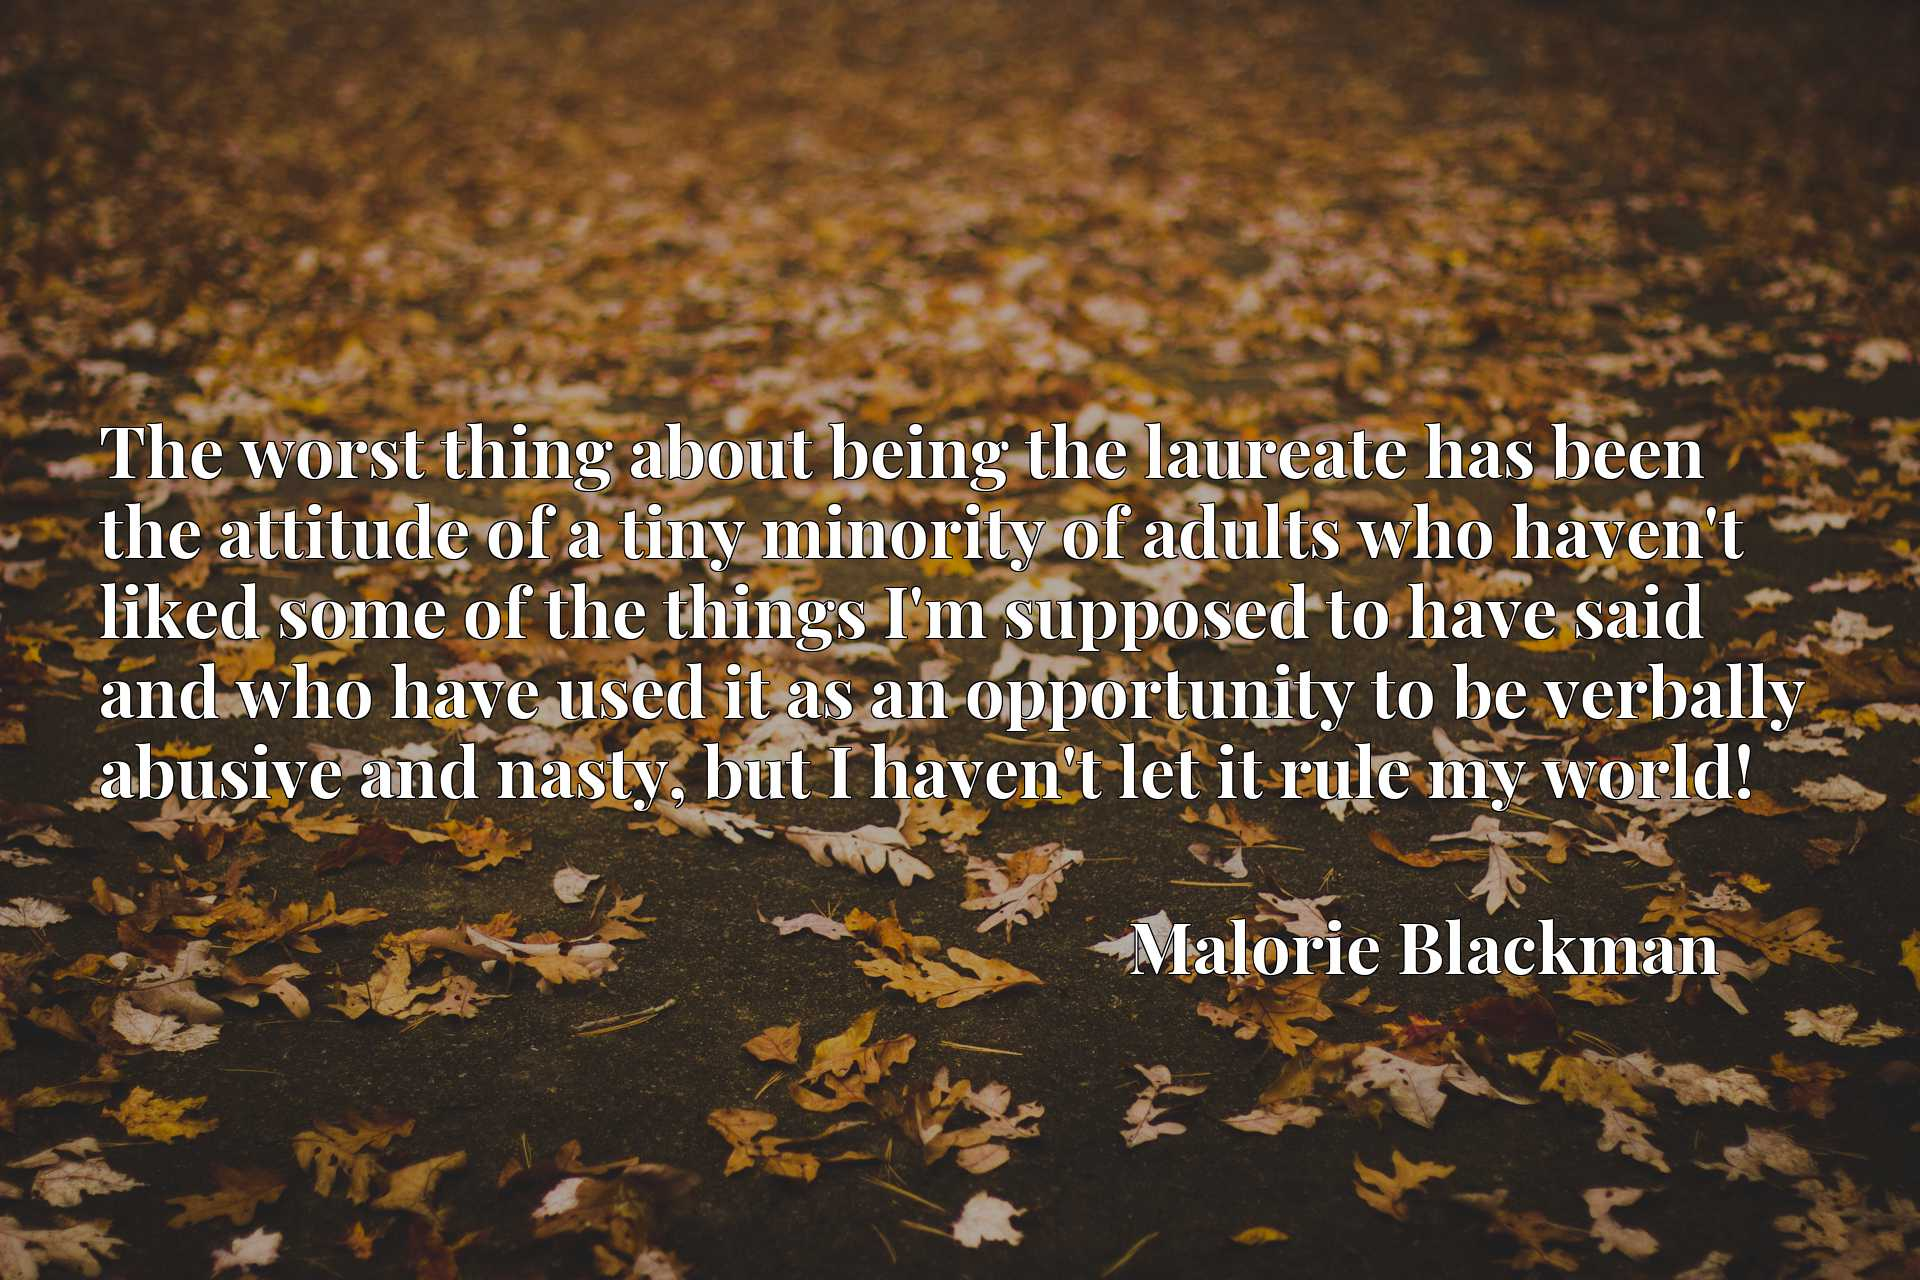 The worst thing about being the laureate has been the attitude of a tiny minority of adults who haven't liked some of the things I'm supposed to have said and who have used it as an opportunity to be verbally abusive and nasty, but I haven't let it rule my world!